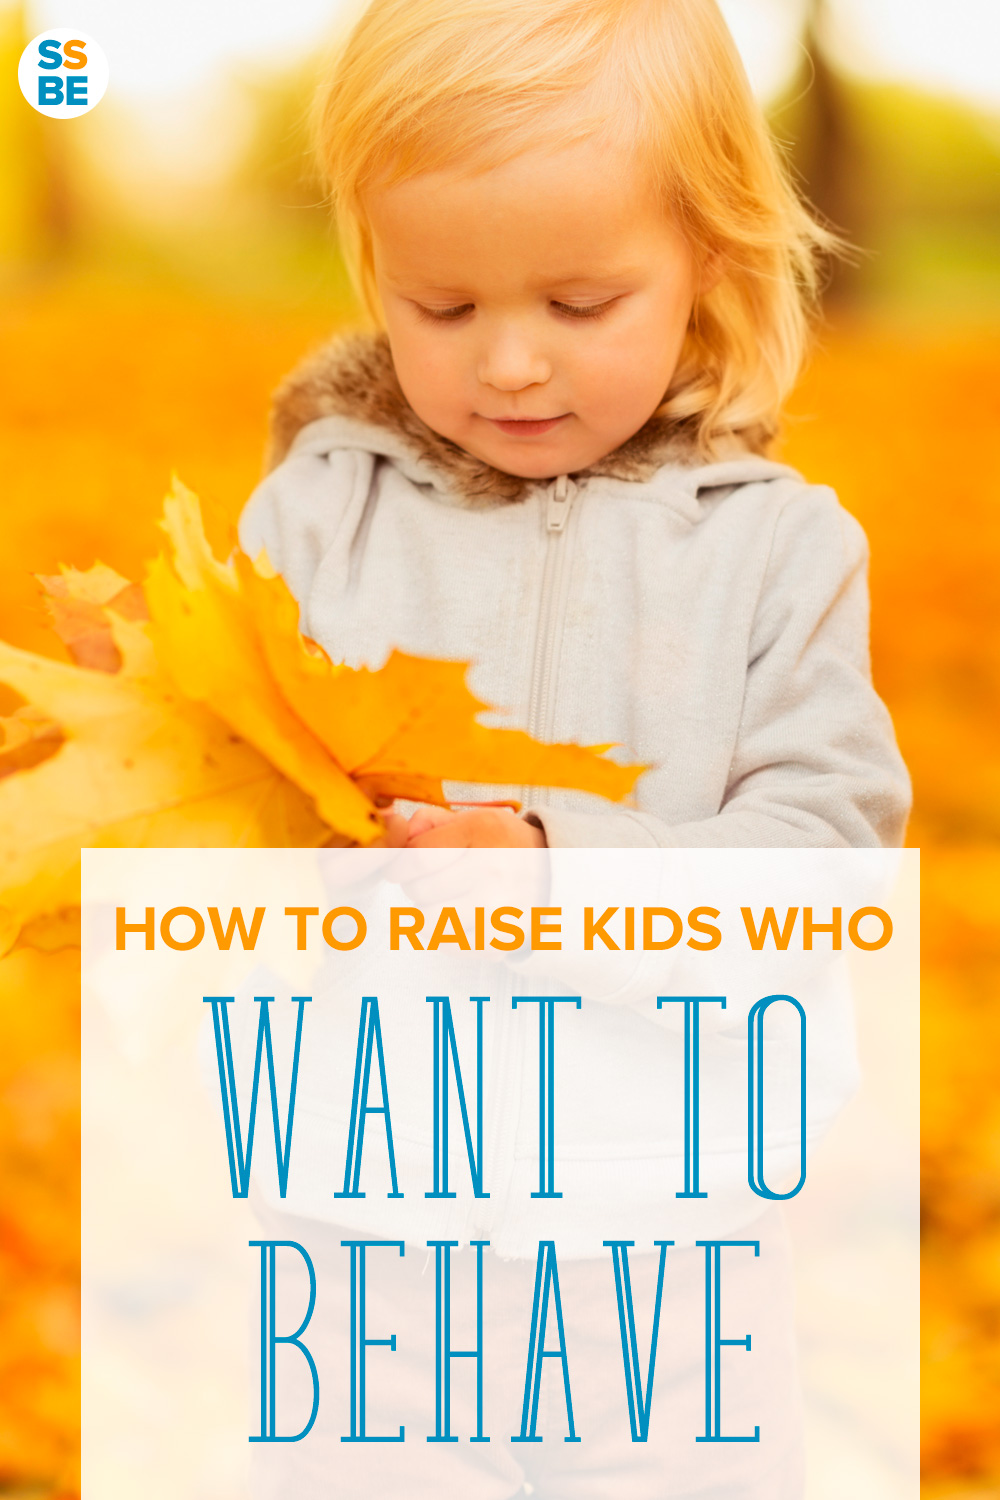 Are you seeing bad behavior in children? Here's how to raise kids not just to behave, but who WANT to, even when no one is looking.